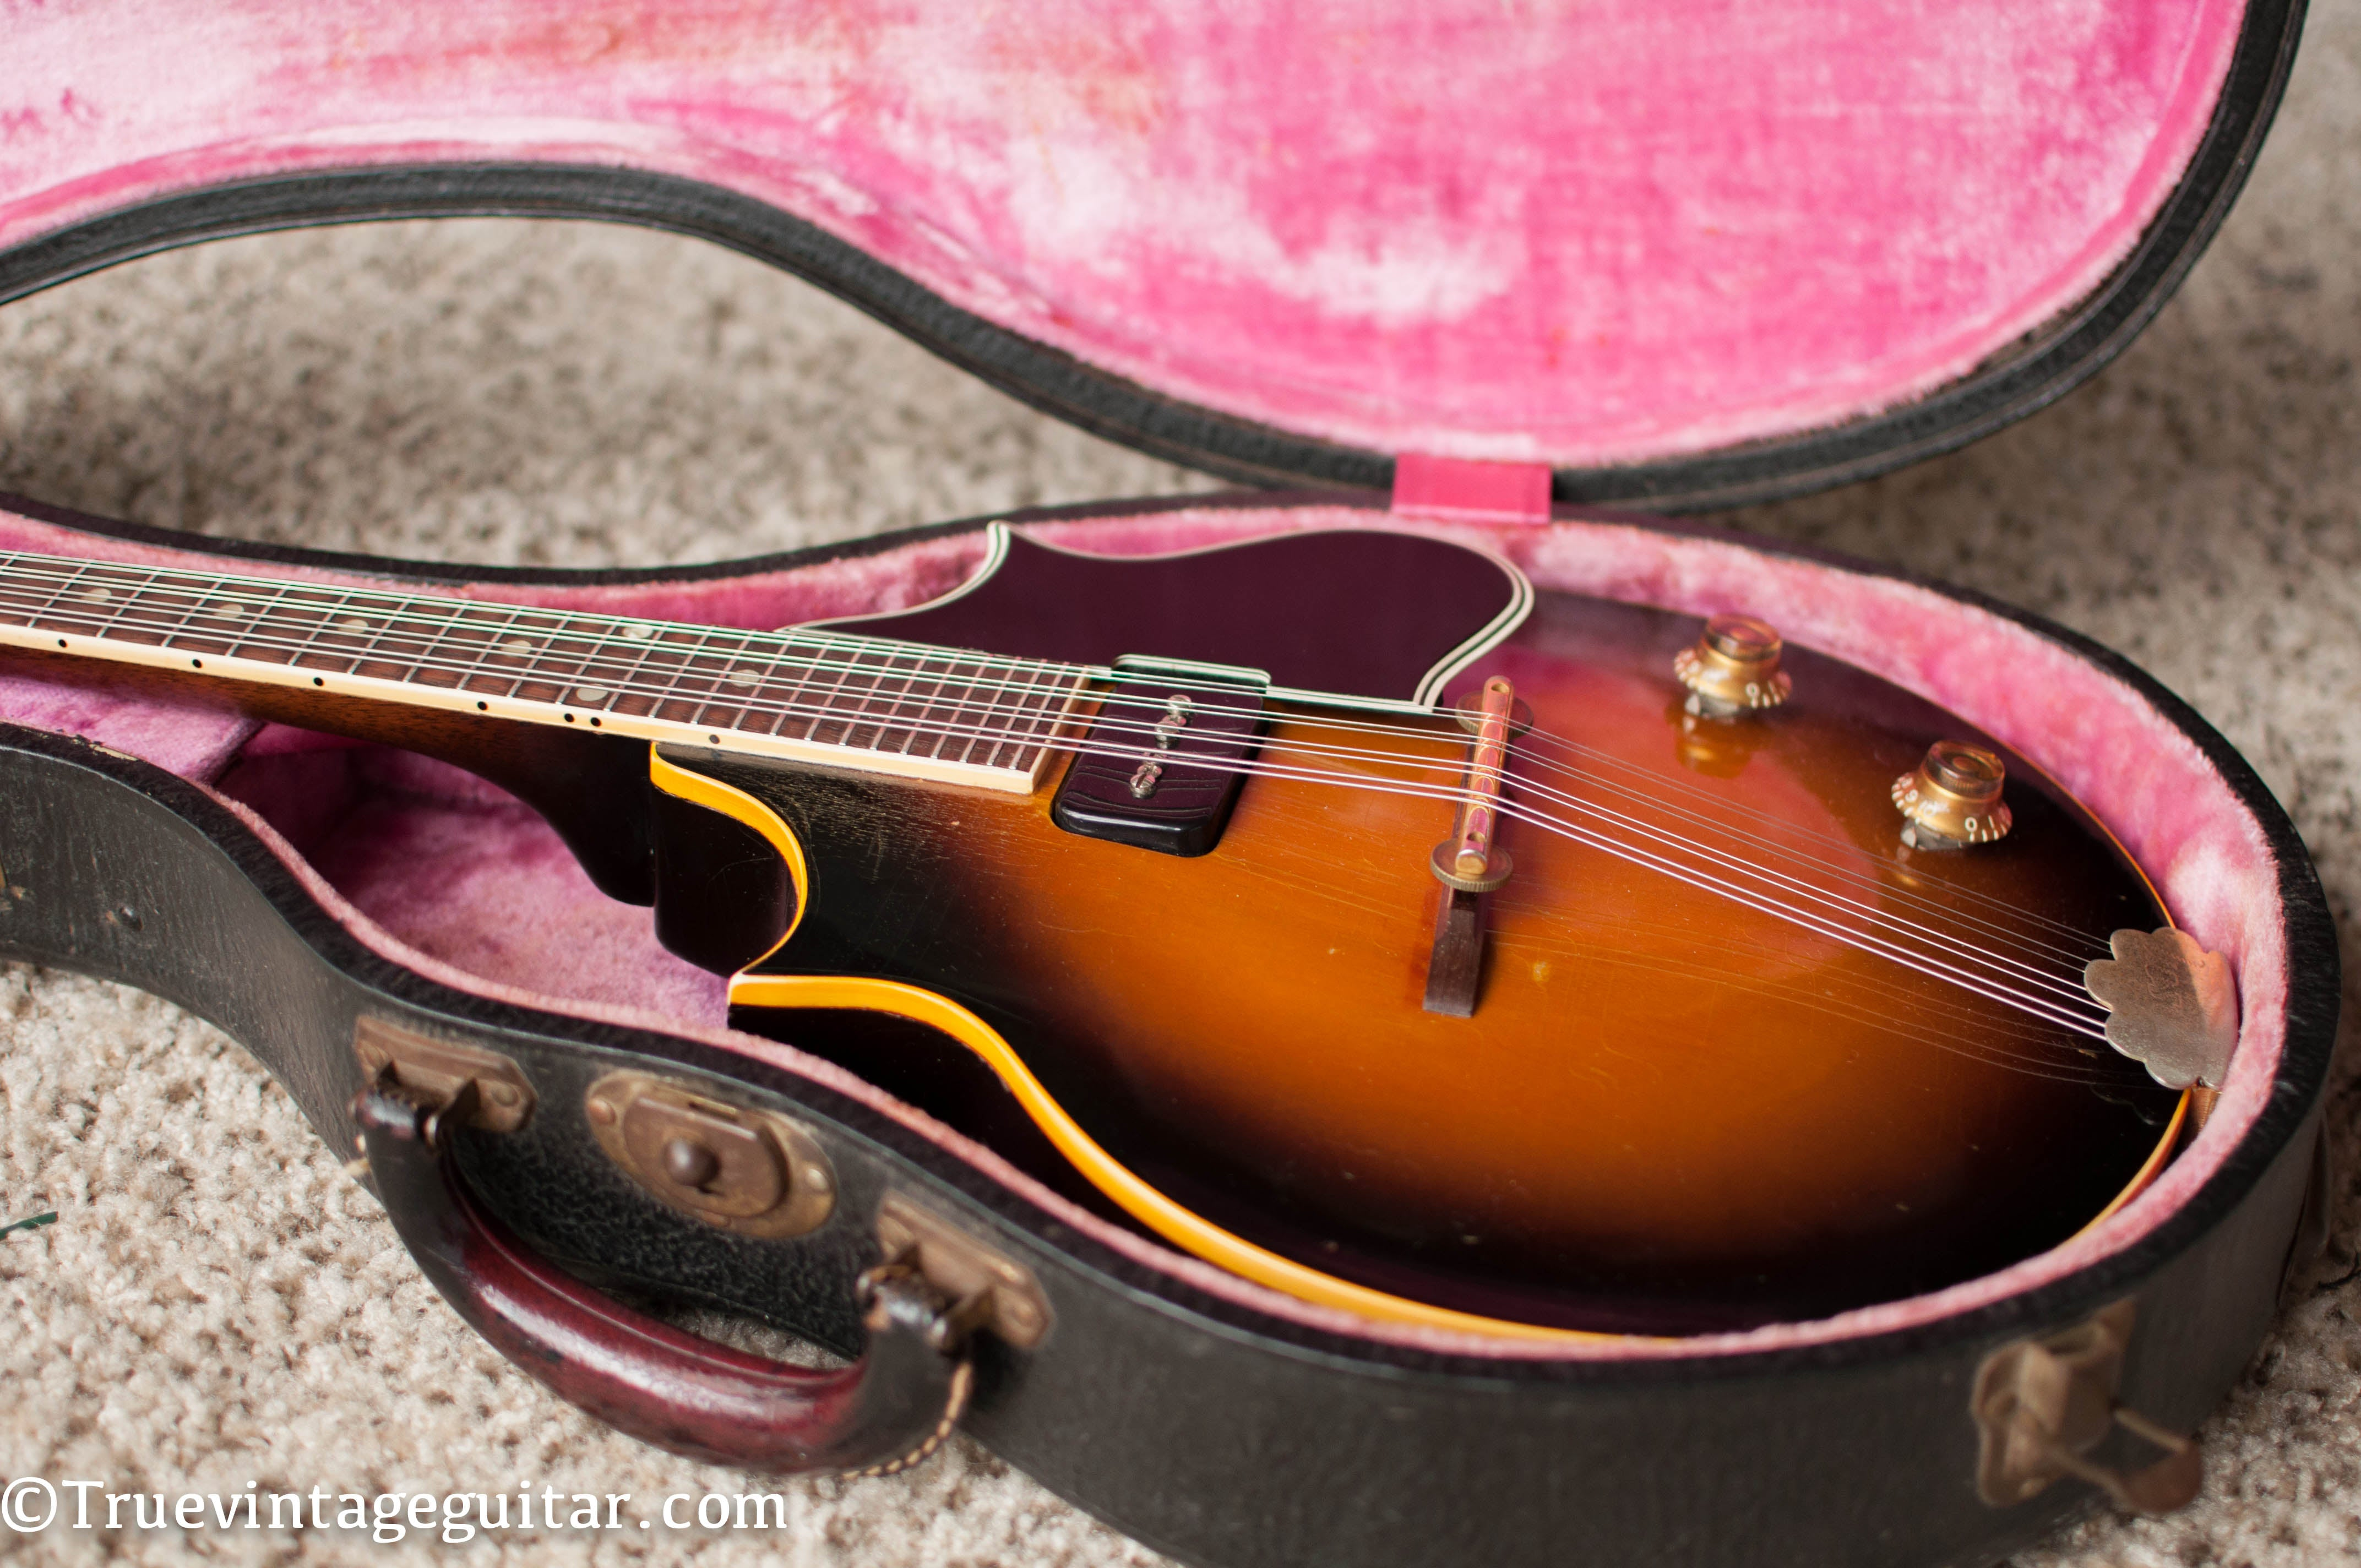 Vintage Gibson solid body electric mandolin 1950s